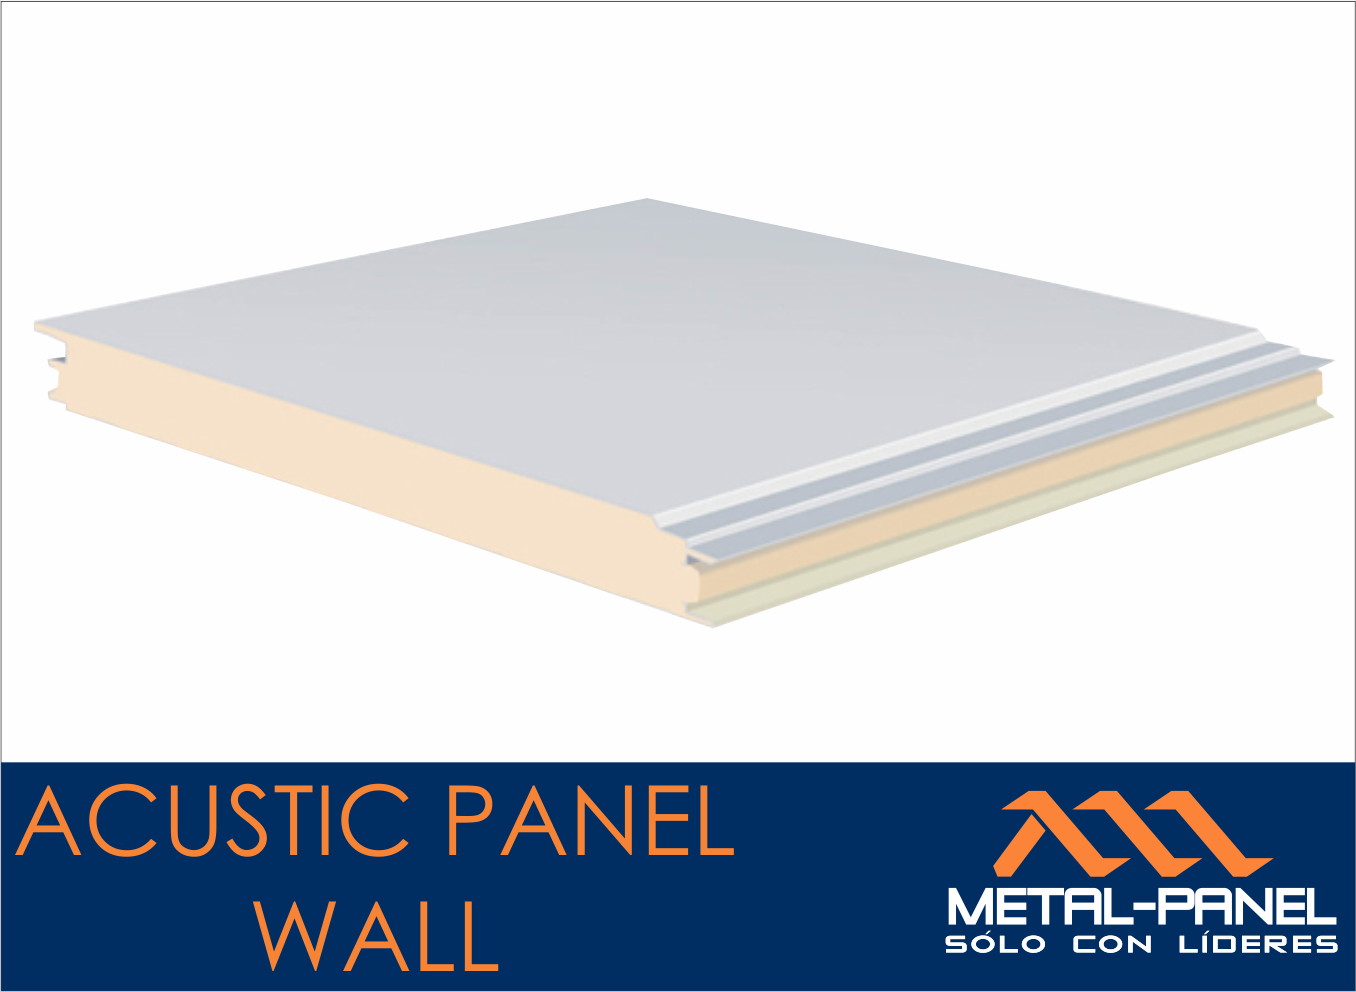 acustic panel wall